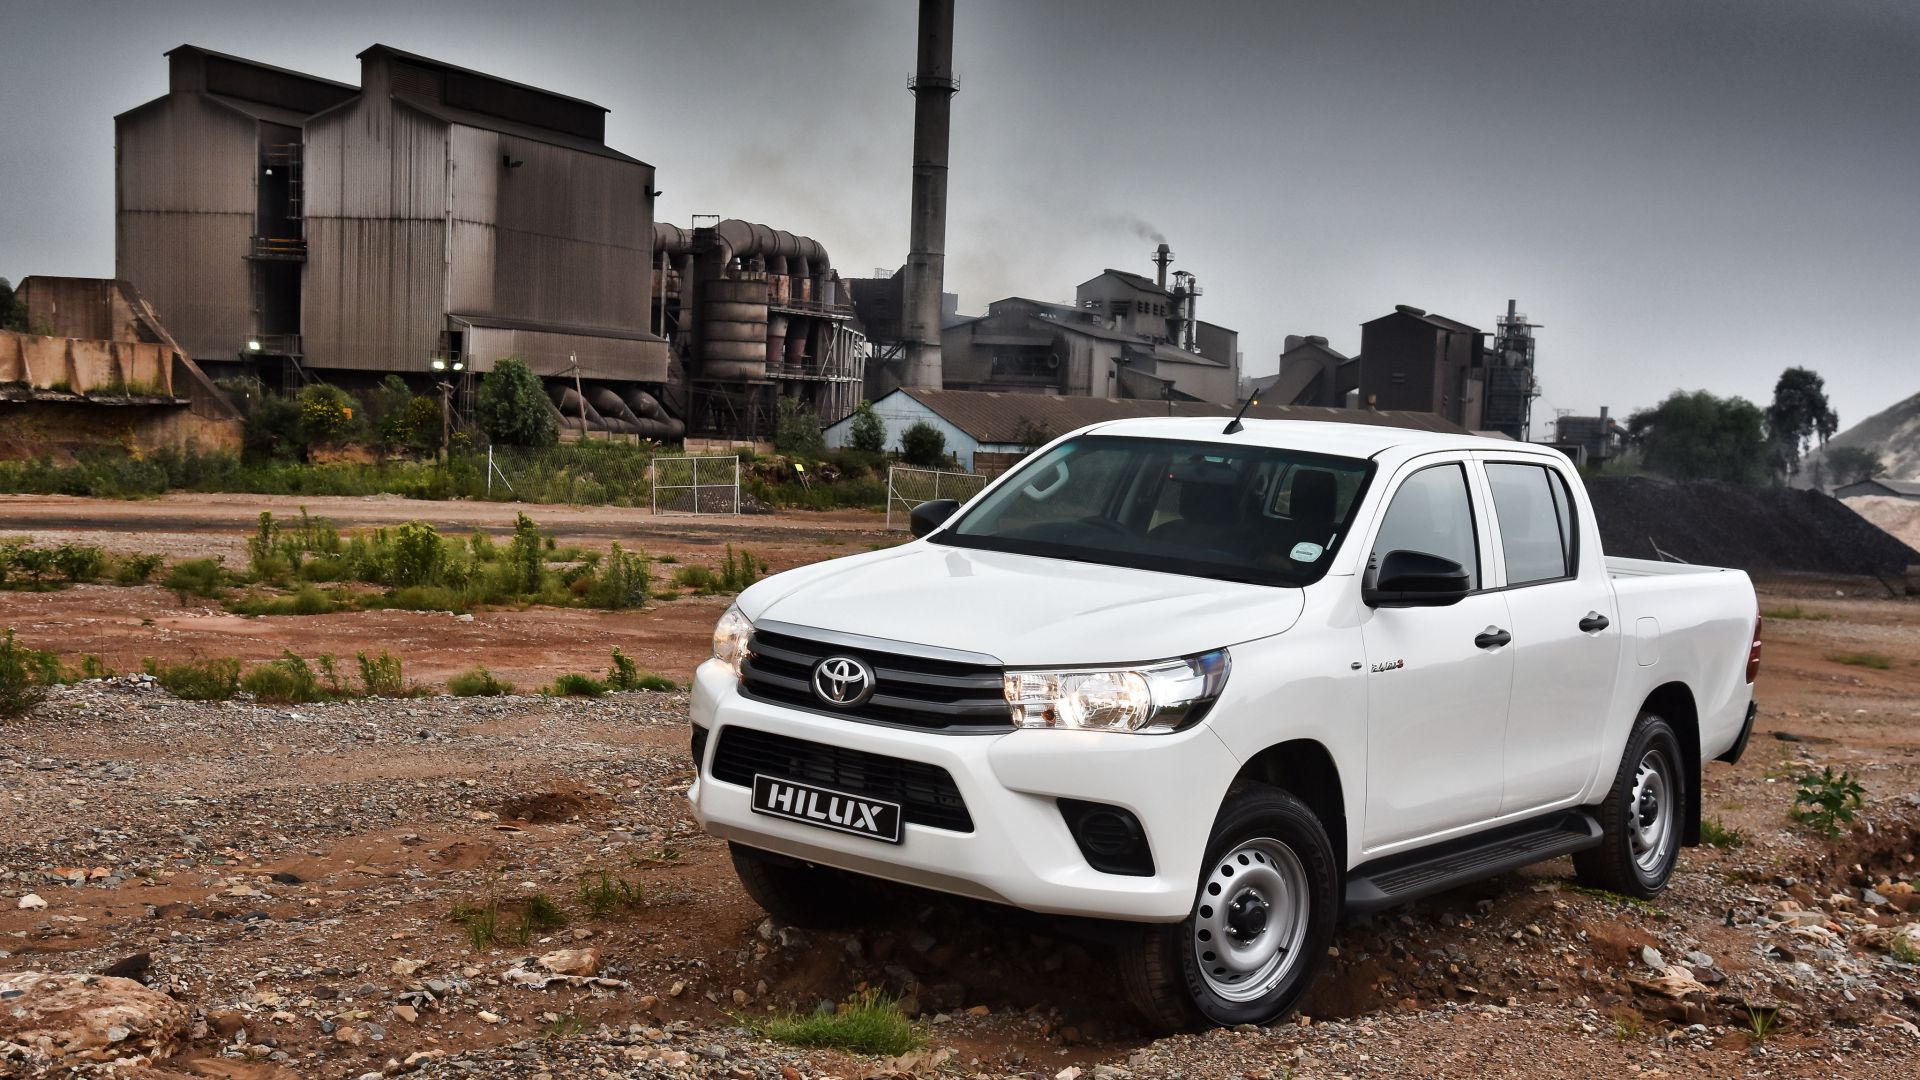 wallpaper toyota hilux 4x4 srx double cab pickup white cars bikes 9796. Black Bedroom Furniture Sets. Home Design Ideas